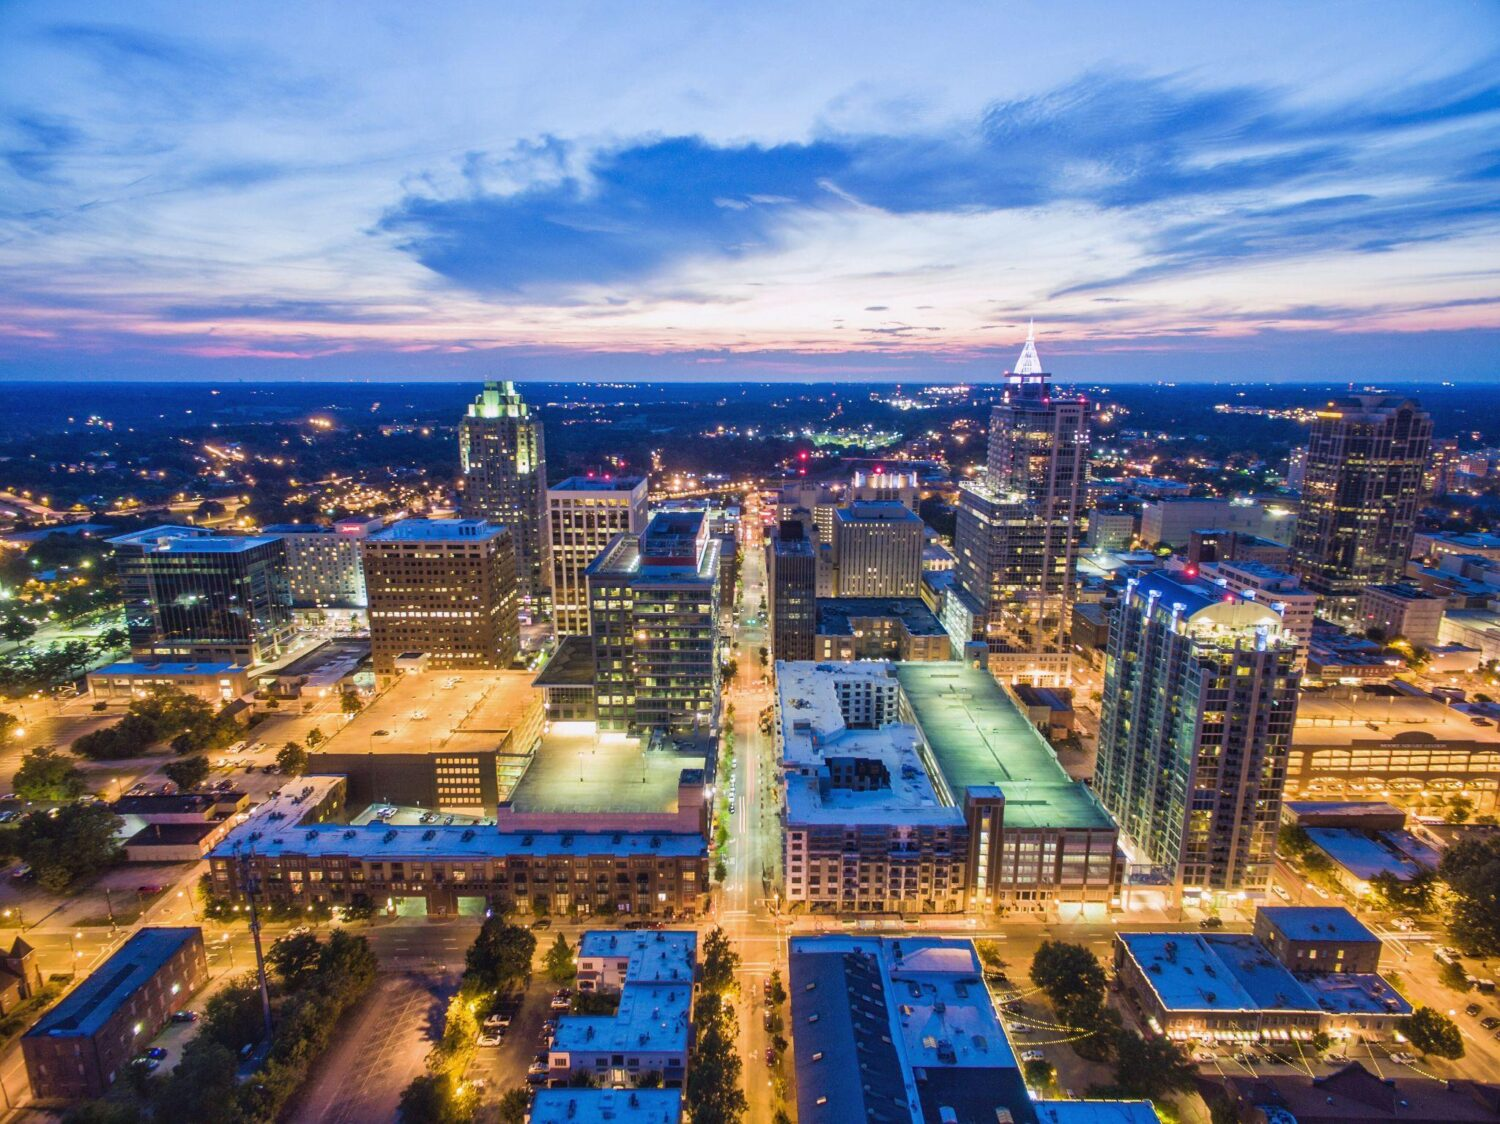 Aerial View of the City of Raleigh at dusk